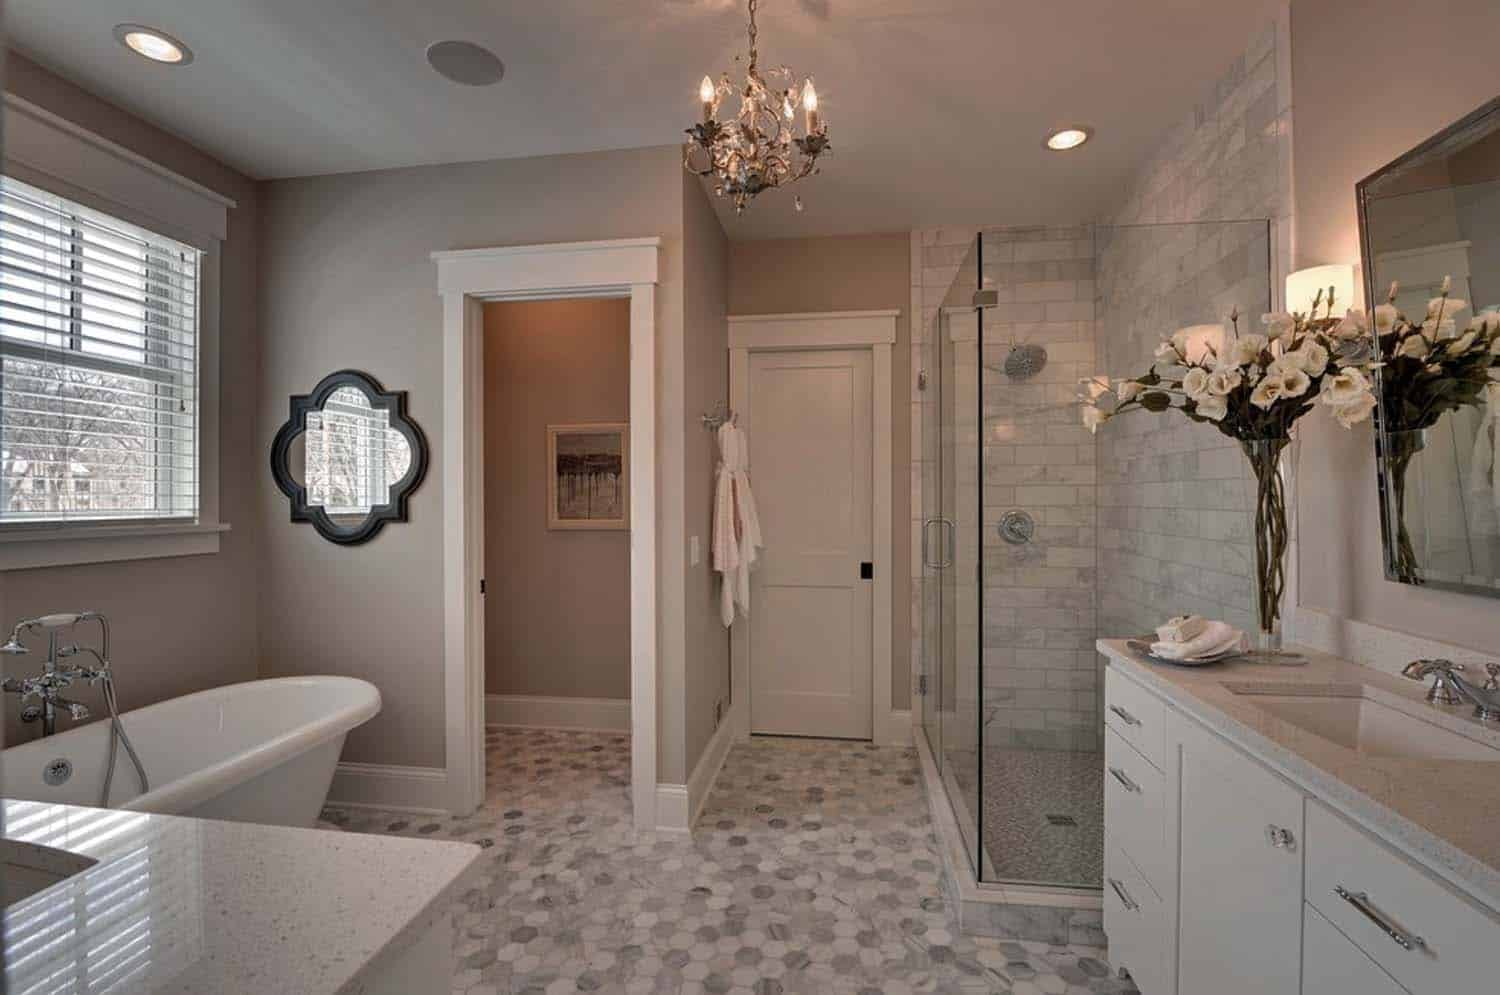 53 Most fabulous traditional style bathroom designs ever Bathroom Design Ideas on bathroom sinks, bathroom suites, bathroom plans, bathroom remodeling, foyer design ideas, bathroom color ideas, bathroom cabinets, walk in closet design ideas, bathroom designs for small spaces, bathroom faucets, bathroom furniture cabinets, bathroom sets, bathroom shelf ideas, utility room design ideas, floor design ideas, fitted bathroom furniture, bathtub ideas, bathroom accessories, bathroom vanities, bathroom storage, bathroom sink, den design ideas, sitting room design ideas, bathroom decorating, bathroom tiles, bathroom shower ideas, bathroom showers, bathroom vanity, bathroom lighting, bathroom pictures, toilet design ideas, bathroom mirrors, bathroom medicine cabinets, small bathroom ideas, bathroom taps, shower design ideas, bathroom furniture, living room design ideas, bathroom layout,